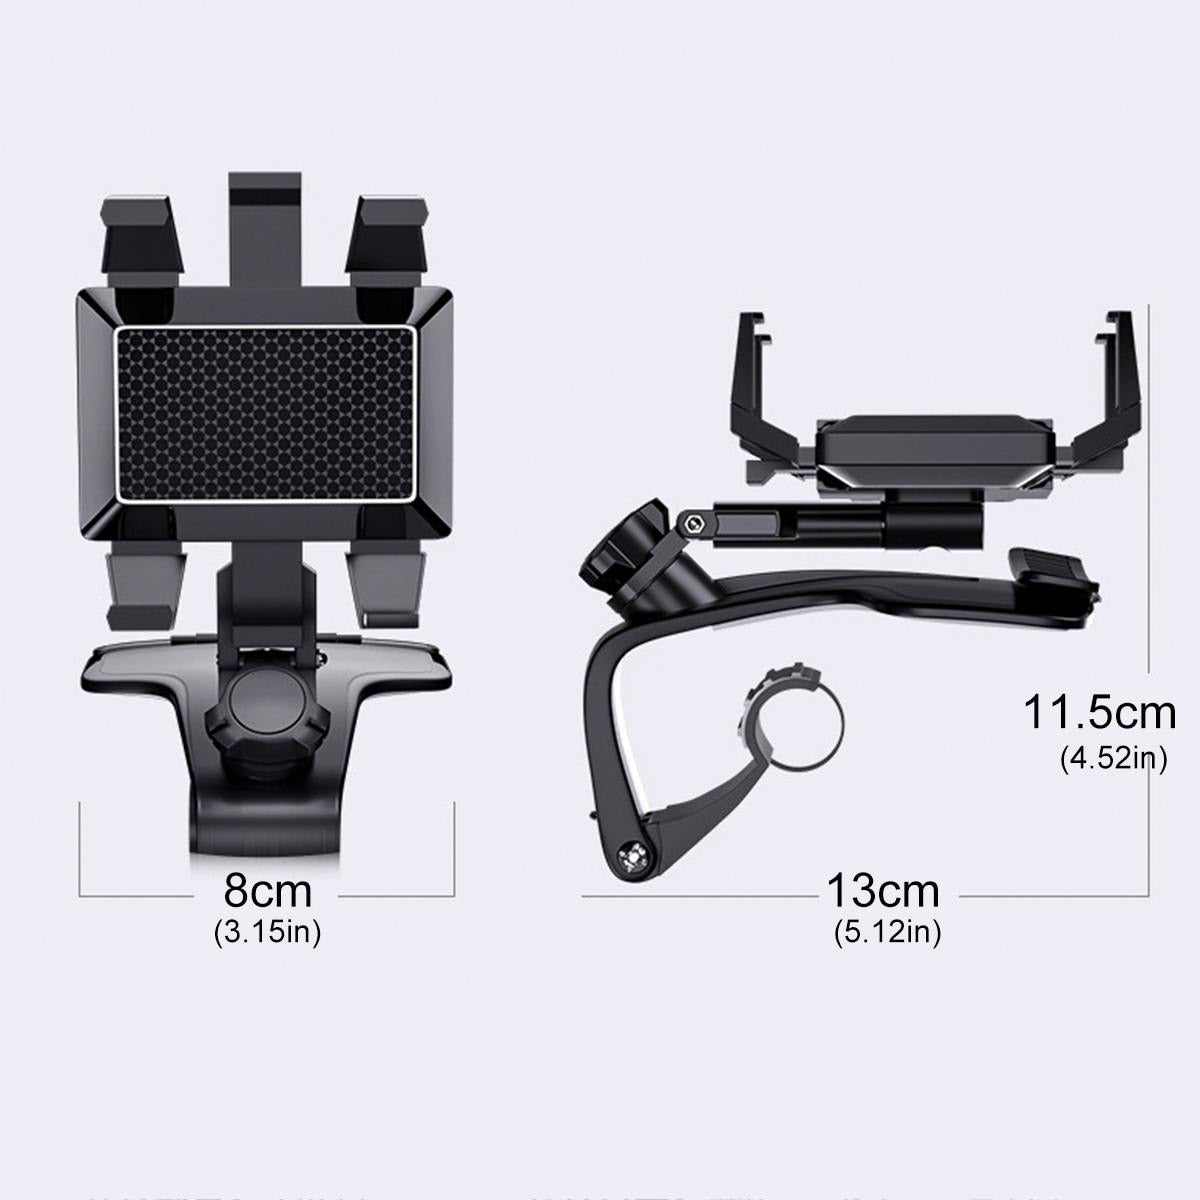 Car Multifunctional Mobile Phone Bracket 360 Degree Sun Visor Mirror Dashboard Mount GPS Stand Phone Holder With Parking Card